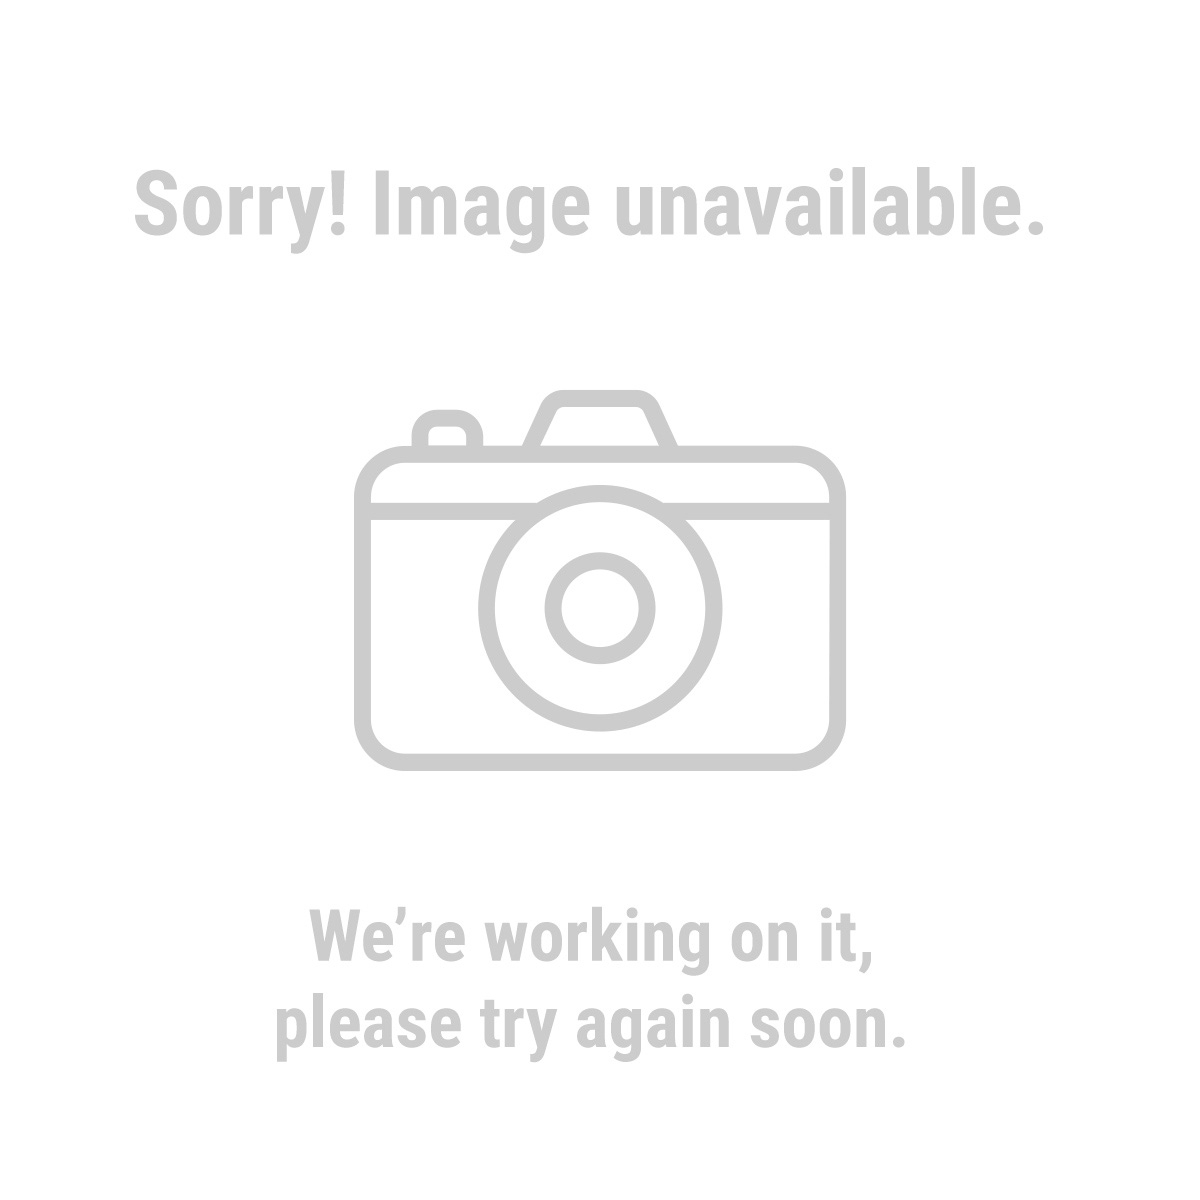 "Harbor Freight Tools 69249 7 ft. 4"" x 9 ft. 6"" All Purpose Weather Resistant Tarp"